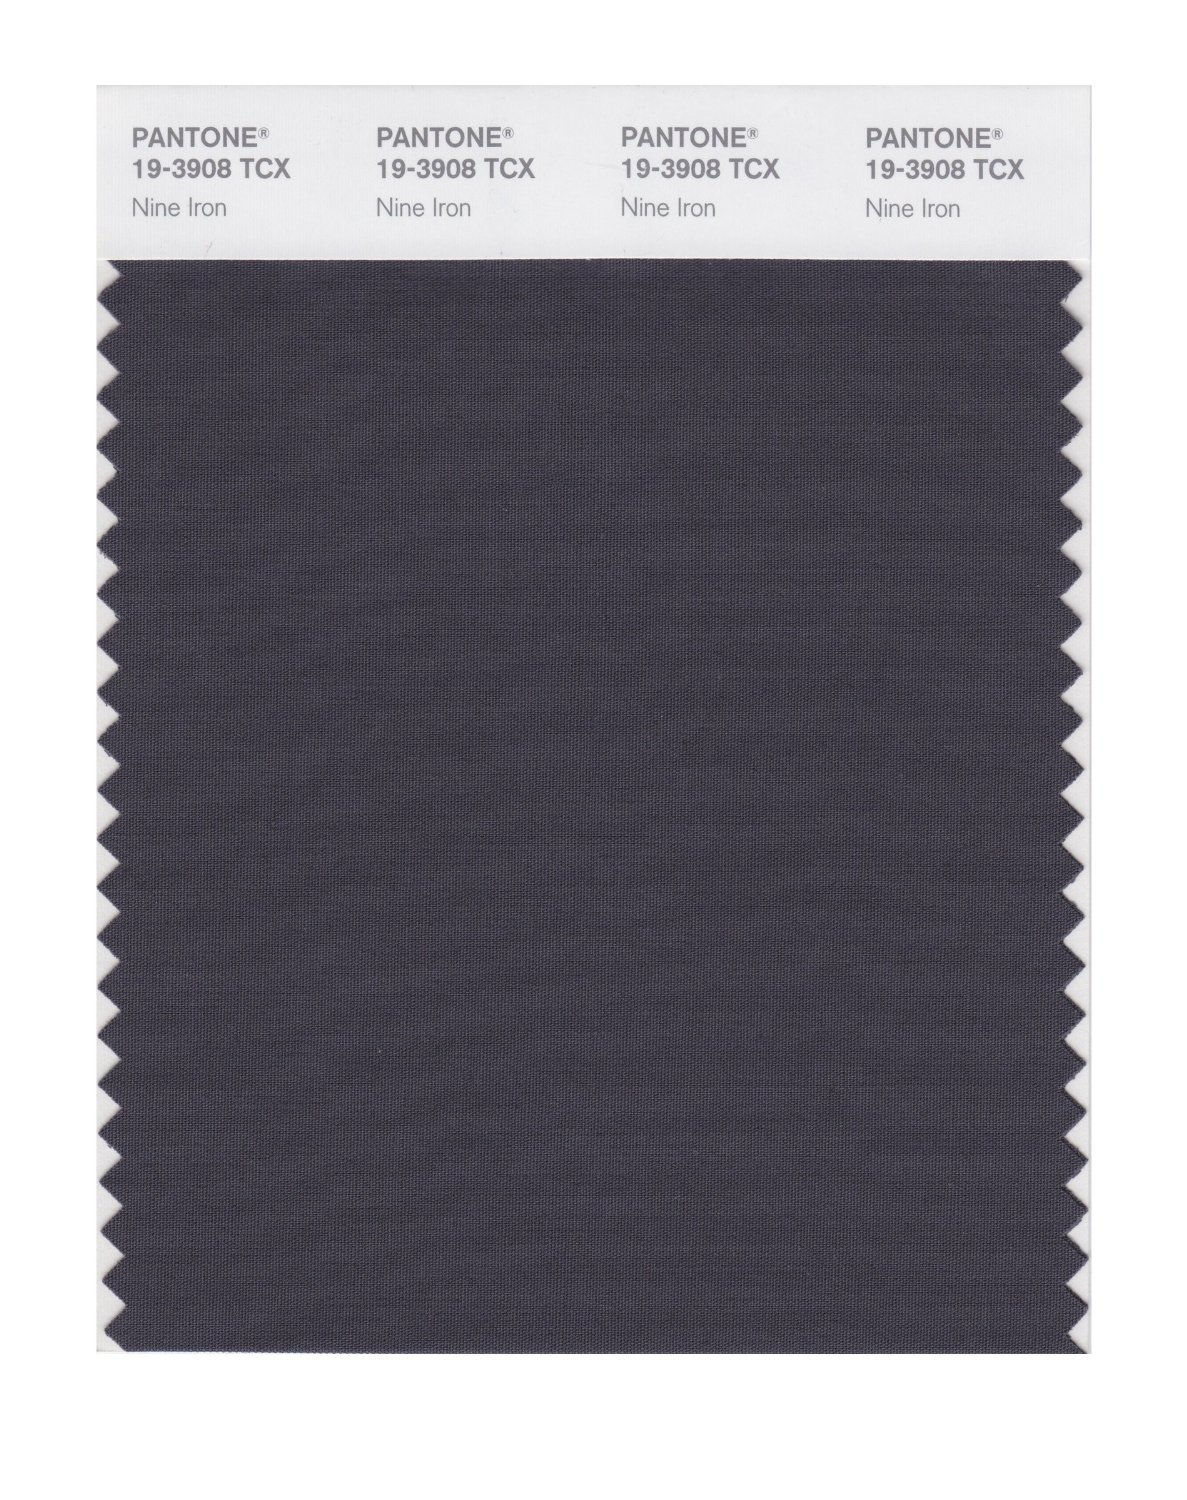 Pantone Smart Swatch 19-3908 Nine Iron